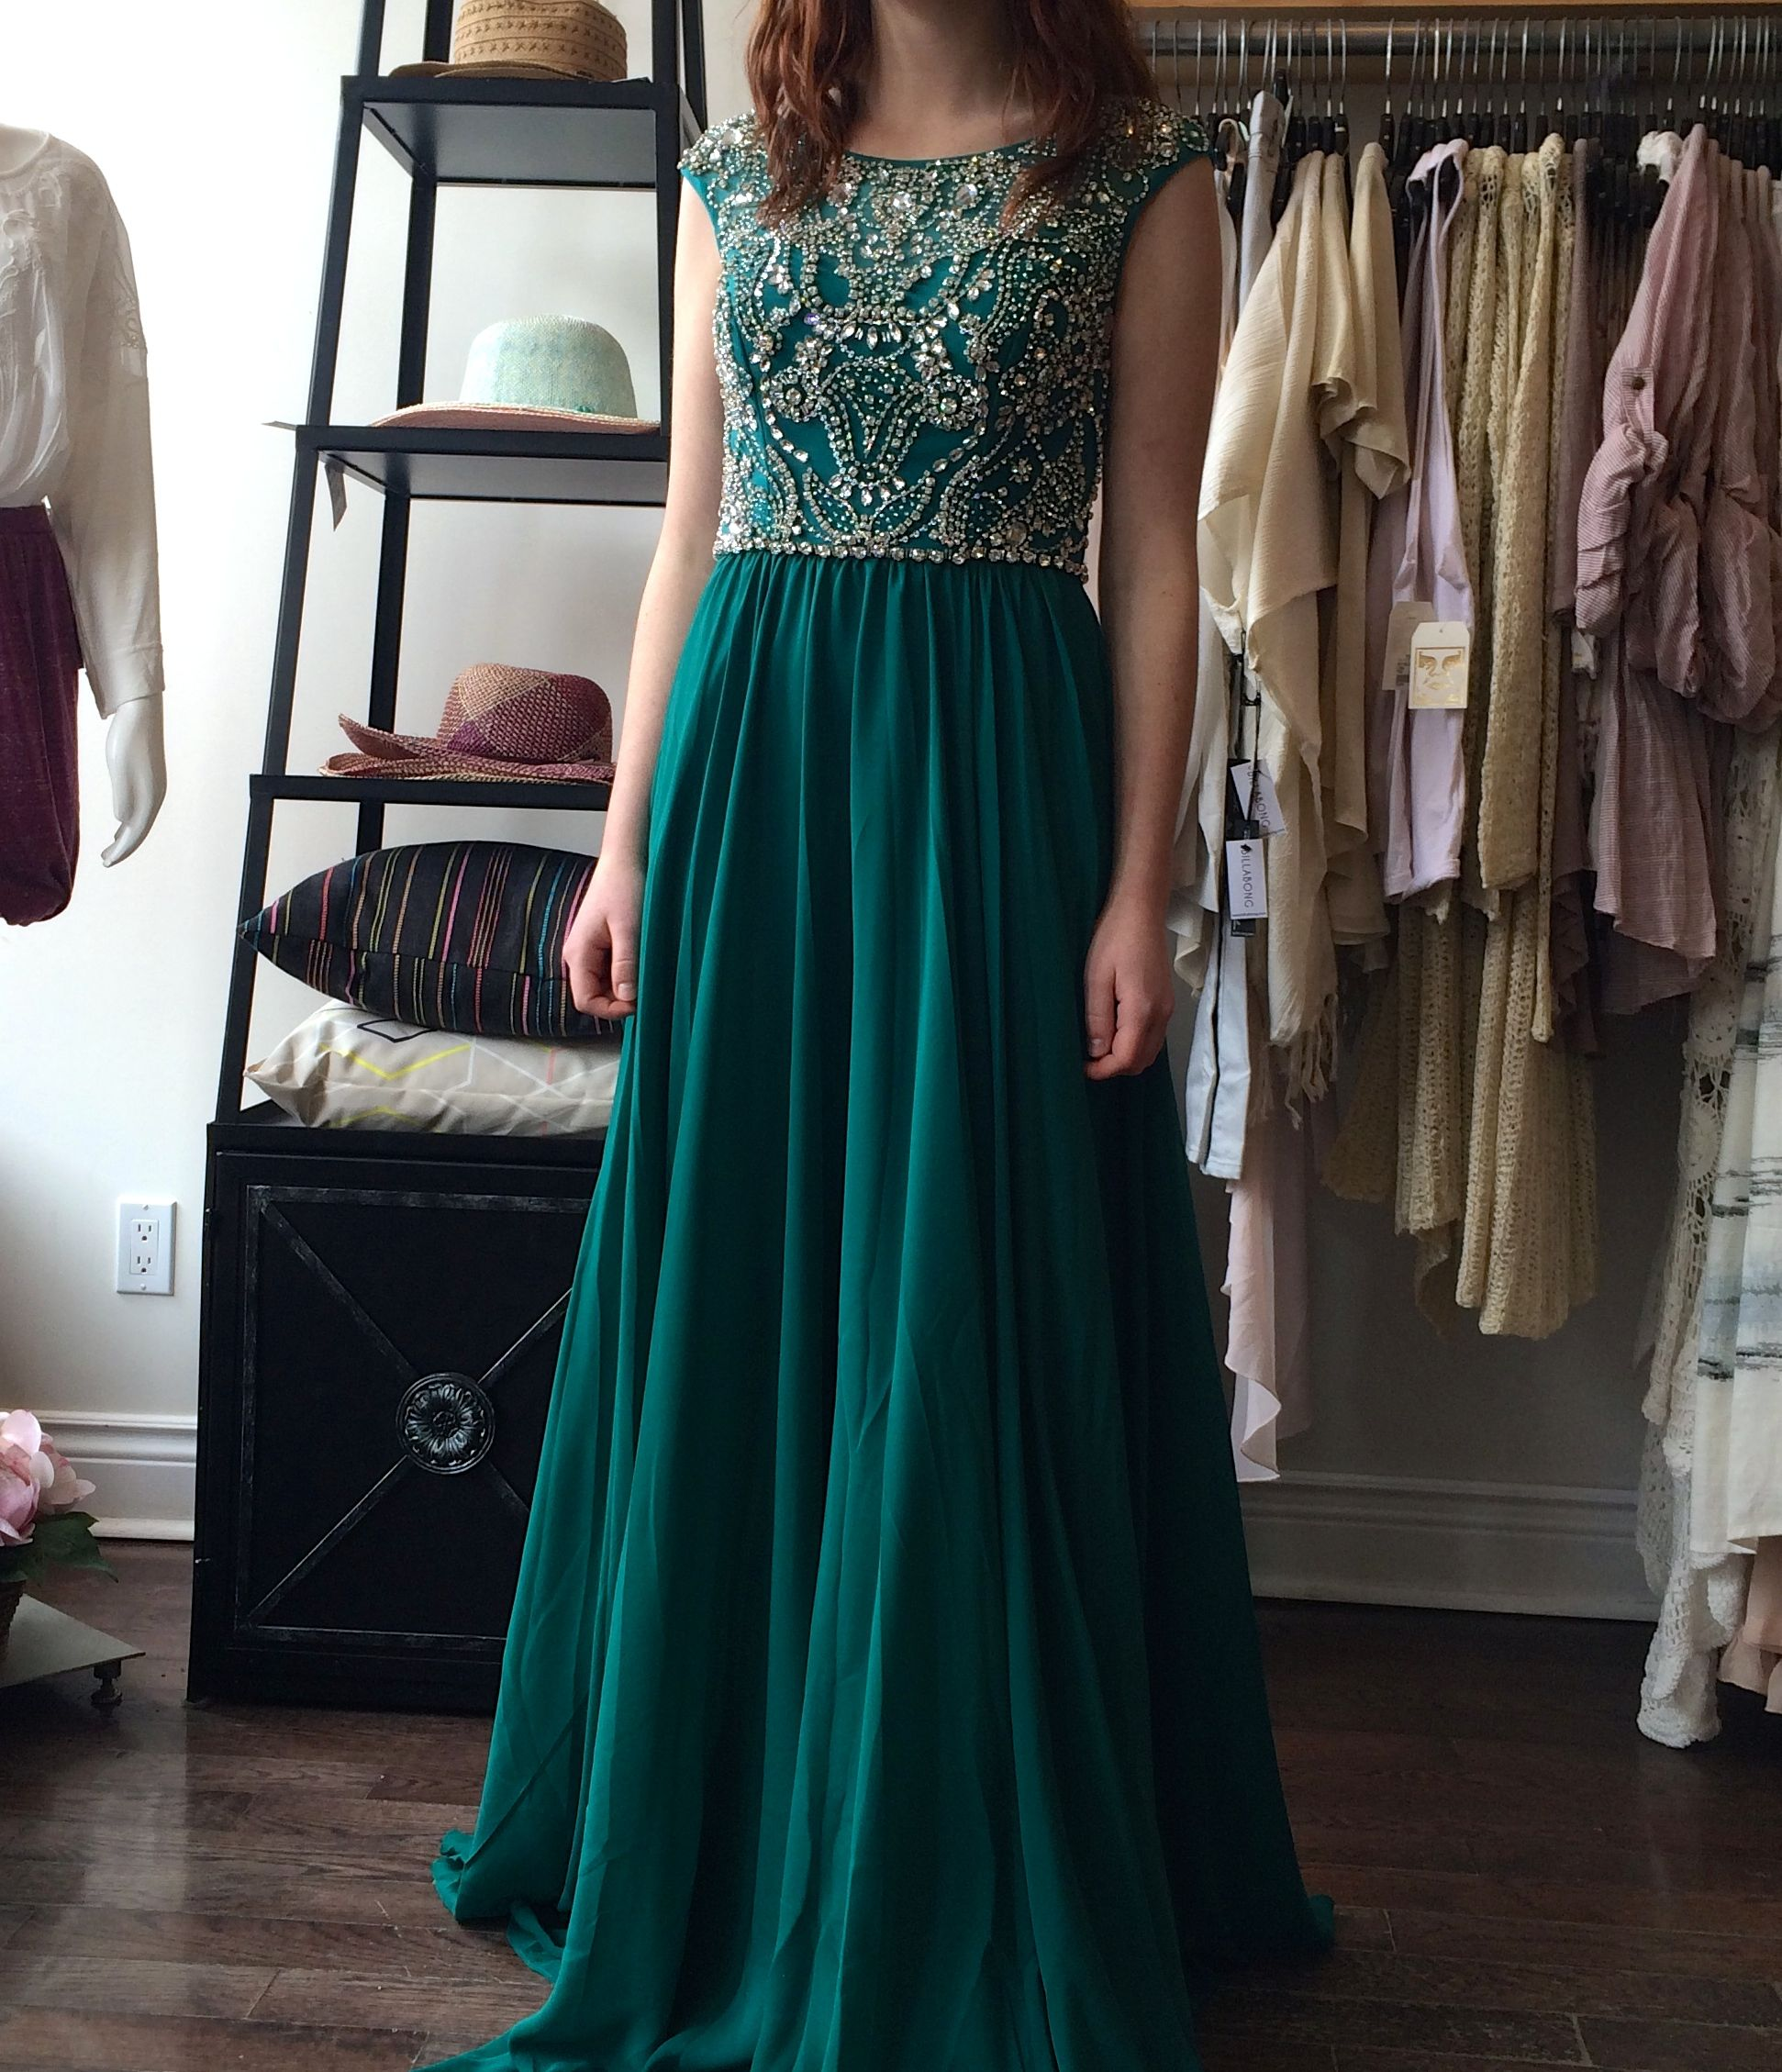 Pin By Rebekah Small On Prom Prom Dresses Dresses Prom